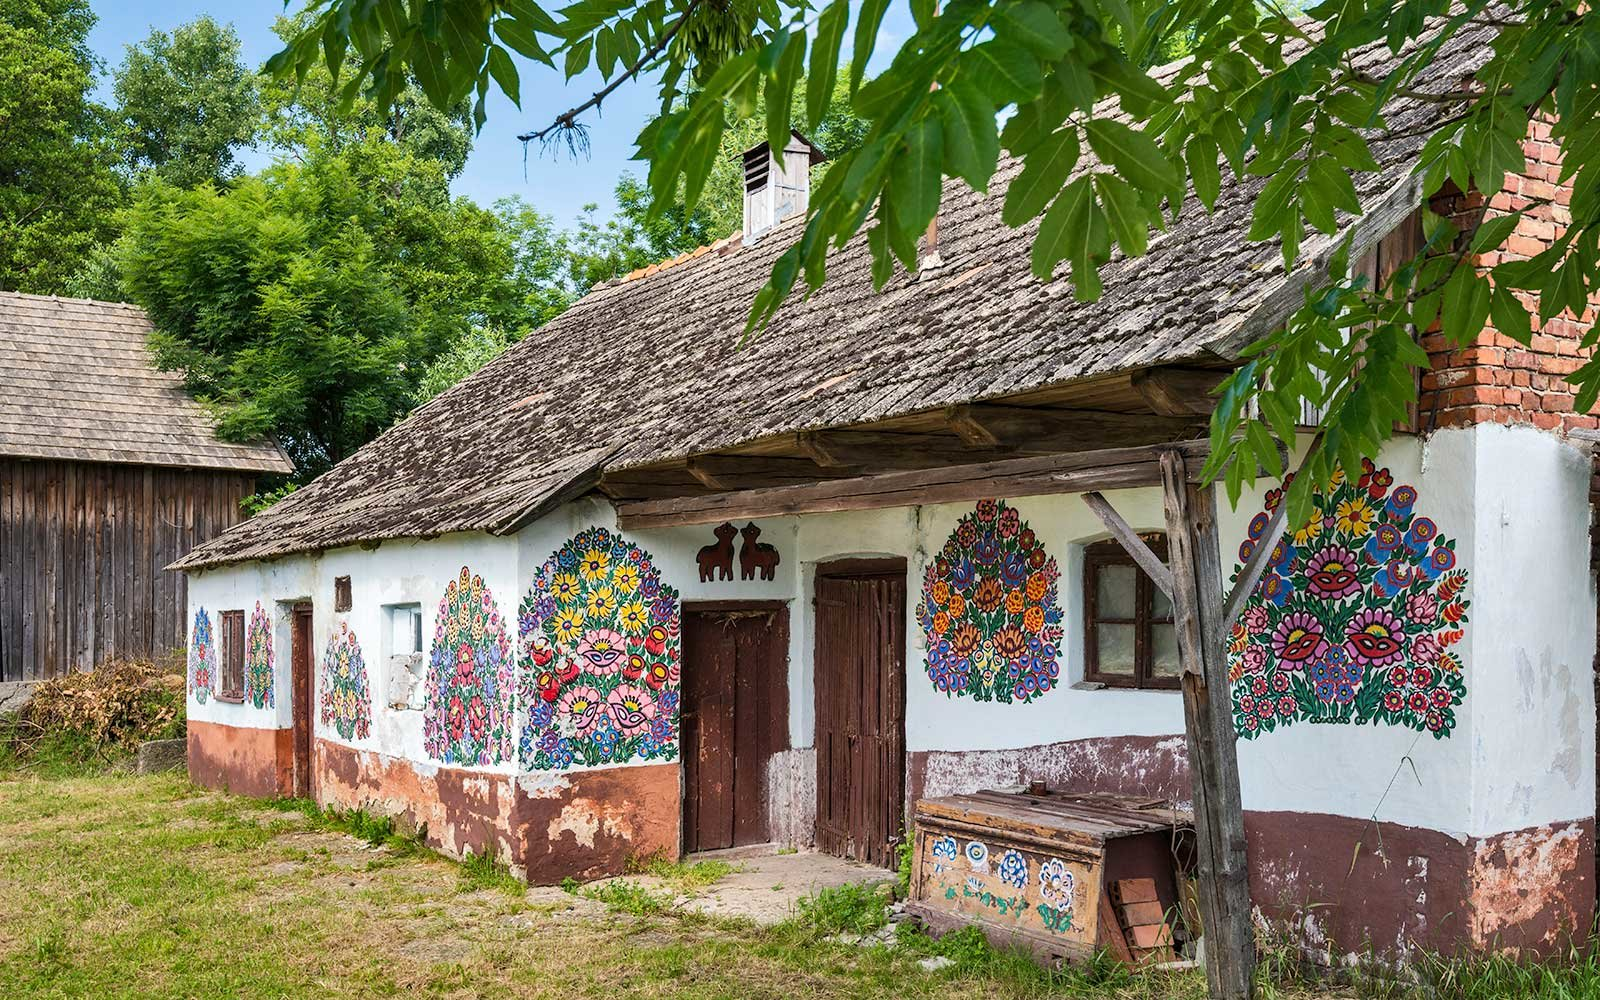 This Polish Village Has Been Covered In Flower Paintings